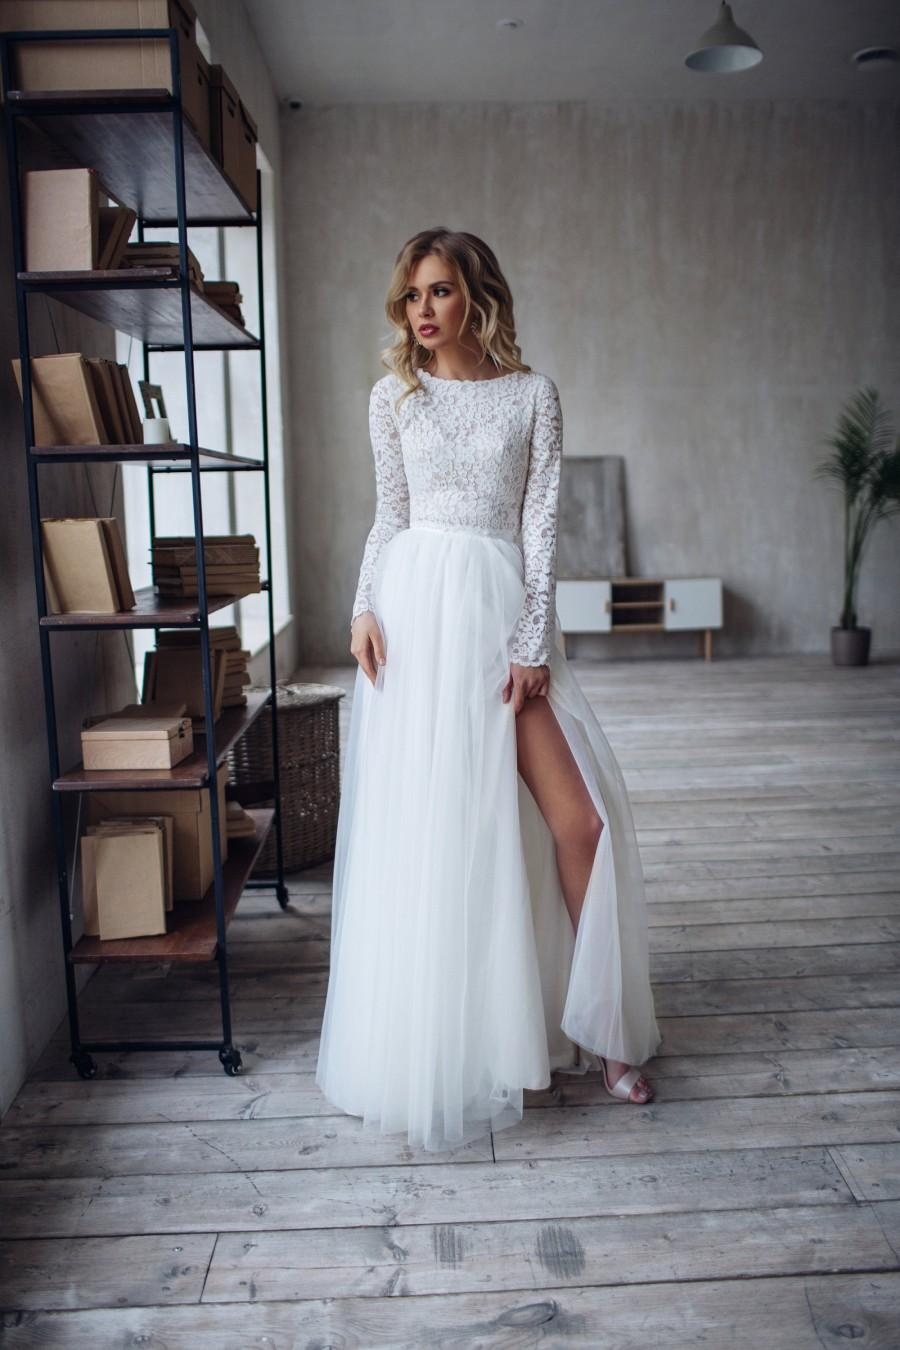 Hochzeit - A R W E N lace crop top and tulle skirt with slit, bridal separates